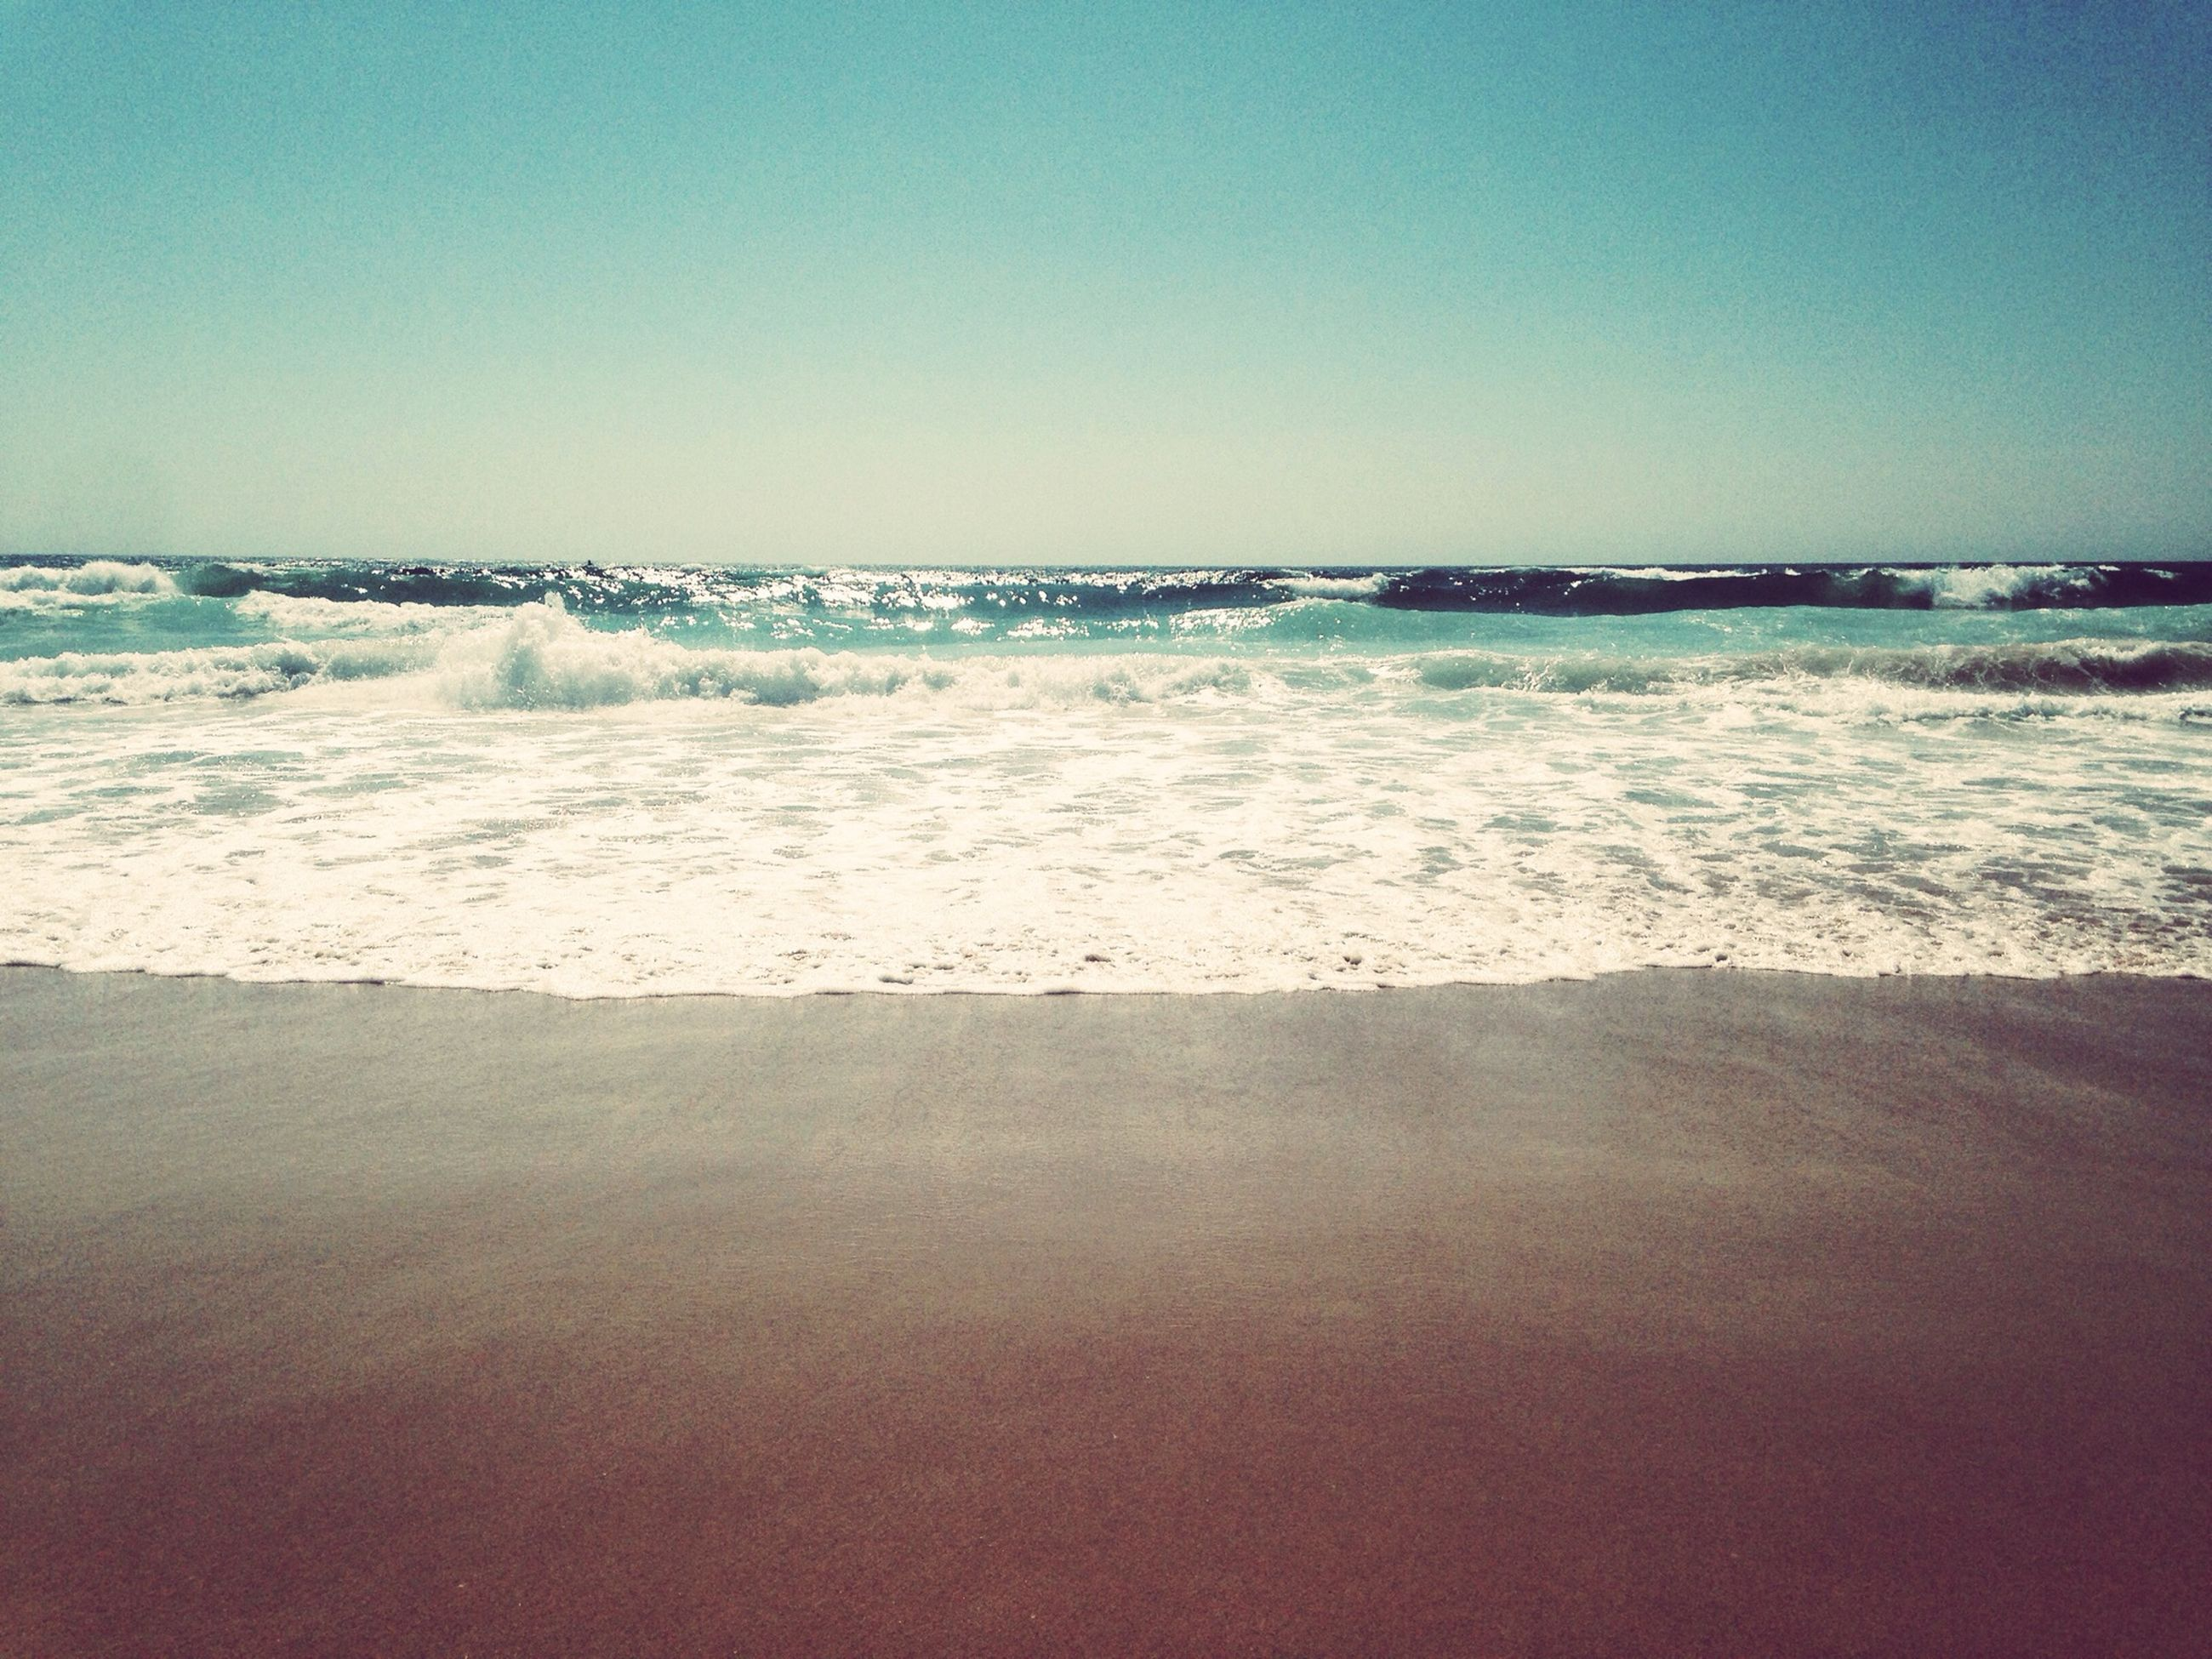 sea, water, clear sky, beach, horizon over water, copy space, wave, shore, scenics, tranquil scene, sand, beauty in nature, tranquility, surf, blue, nature, idyllic, waterfront, motion, outdoors